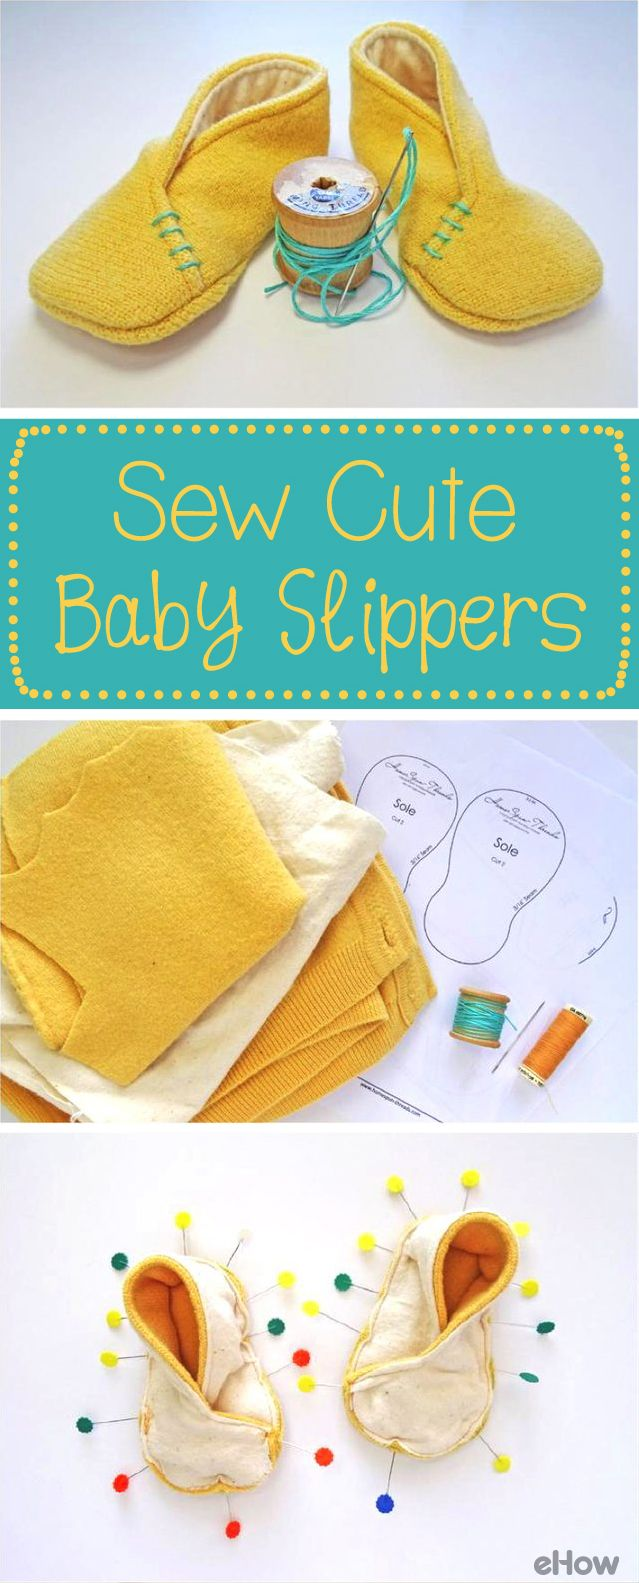 Making felt baby slippers is a rewarding project you can complete in an afternoon. Felt is simple to work with and so cute for baby. The full lining is soft and comfortable on his or her tiny tootsies. Full diy here: http://www.ehow.com/how_12343234_felt-baby-slippers-sew-cute-tutorial.html?utm_source=pinterest.com&utm_medium=referral&utm_content=freestyle&utm_campaign=fanpage